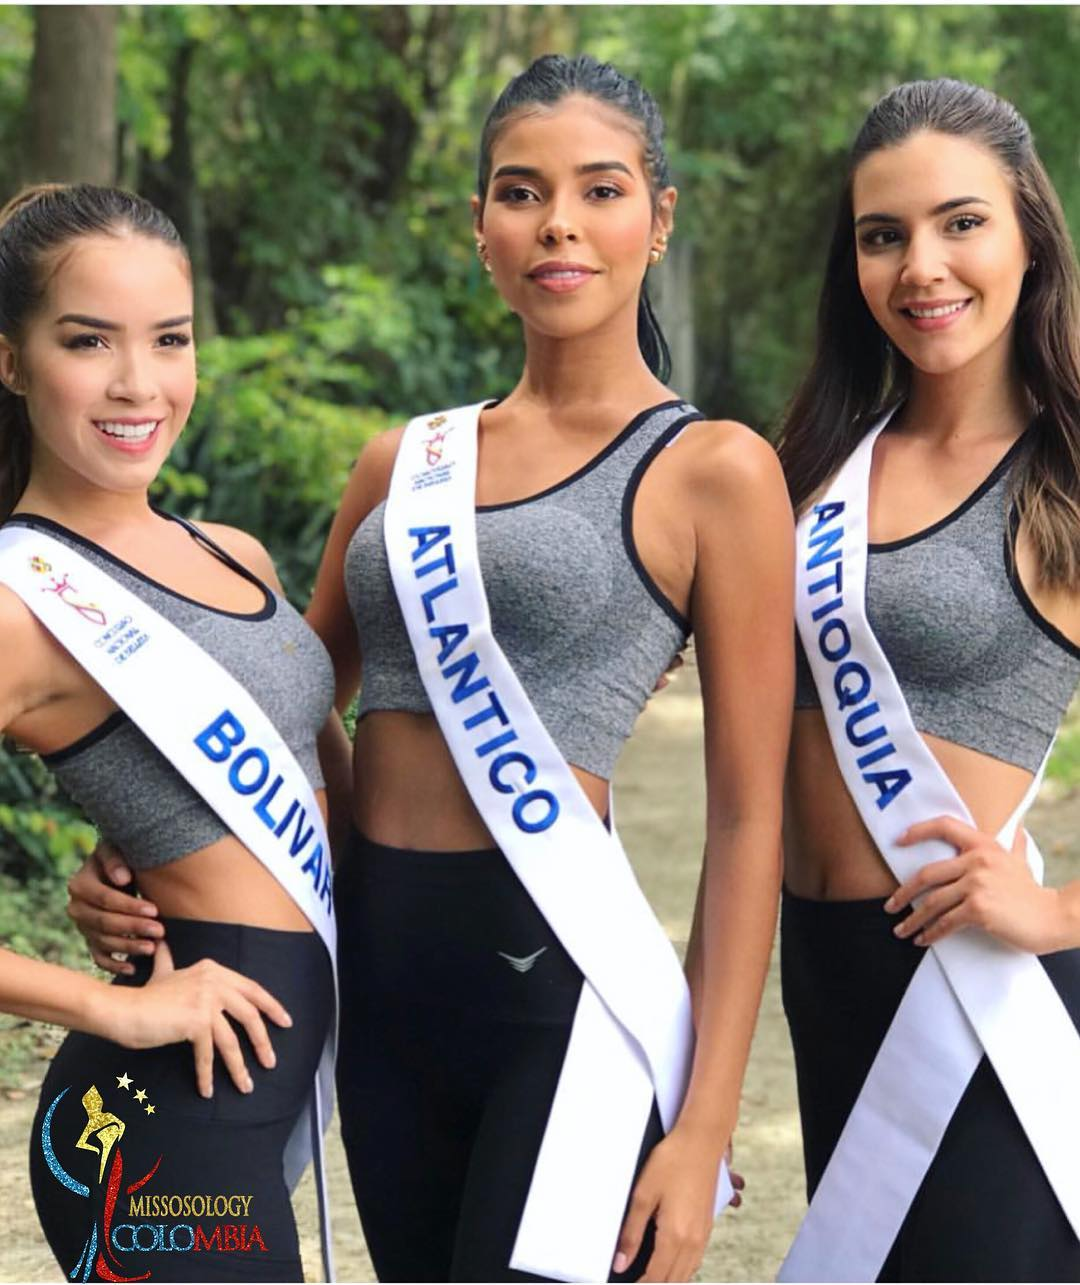 candidatas a miss colombia universo 2018. final: 30 sep. - Página 5 Bdjbbmy2